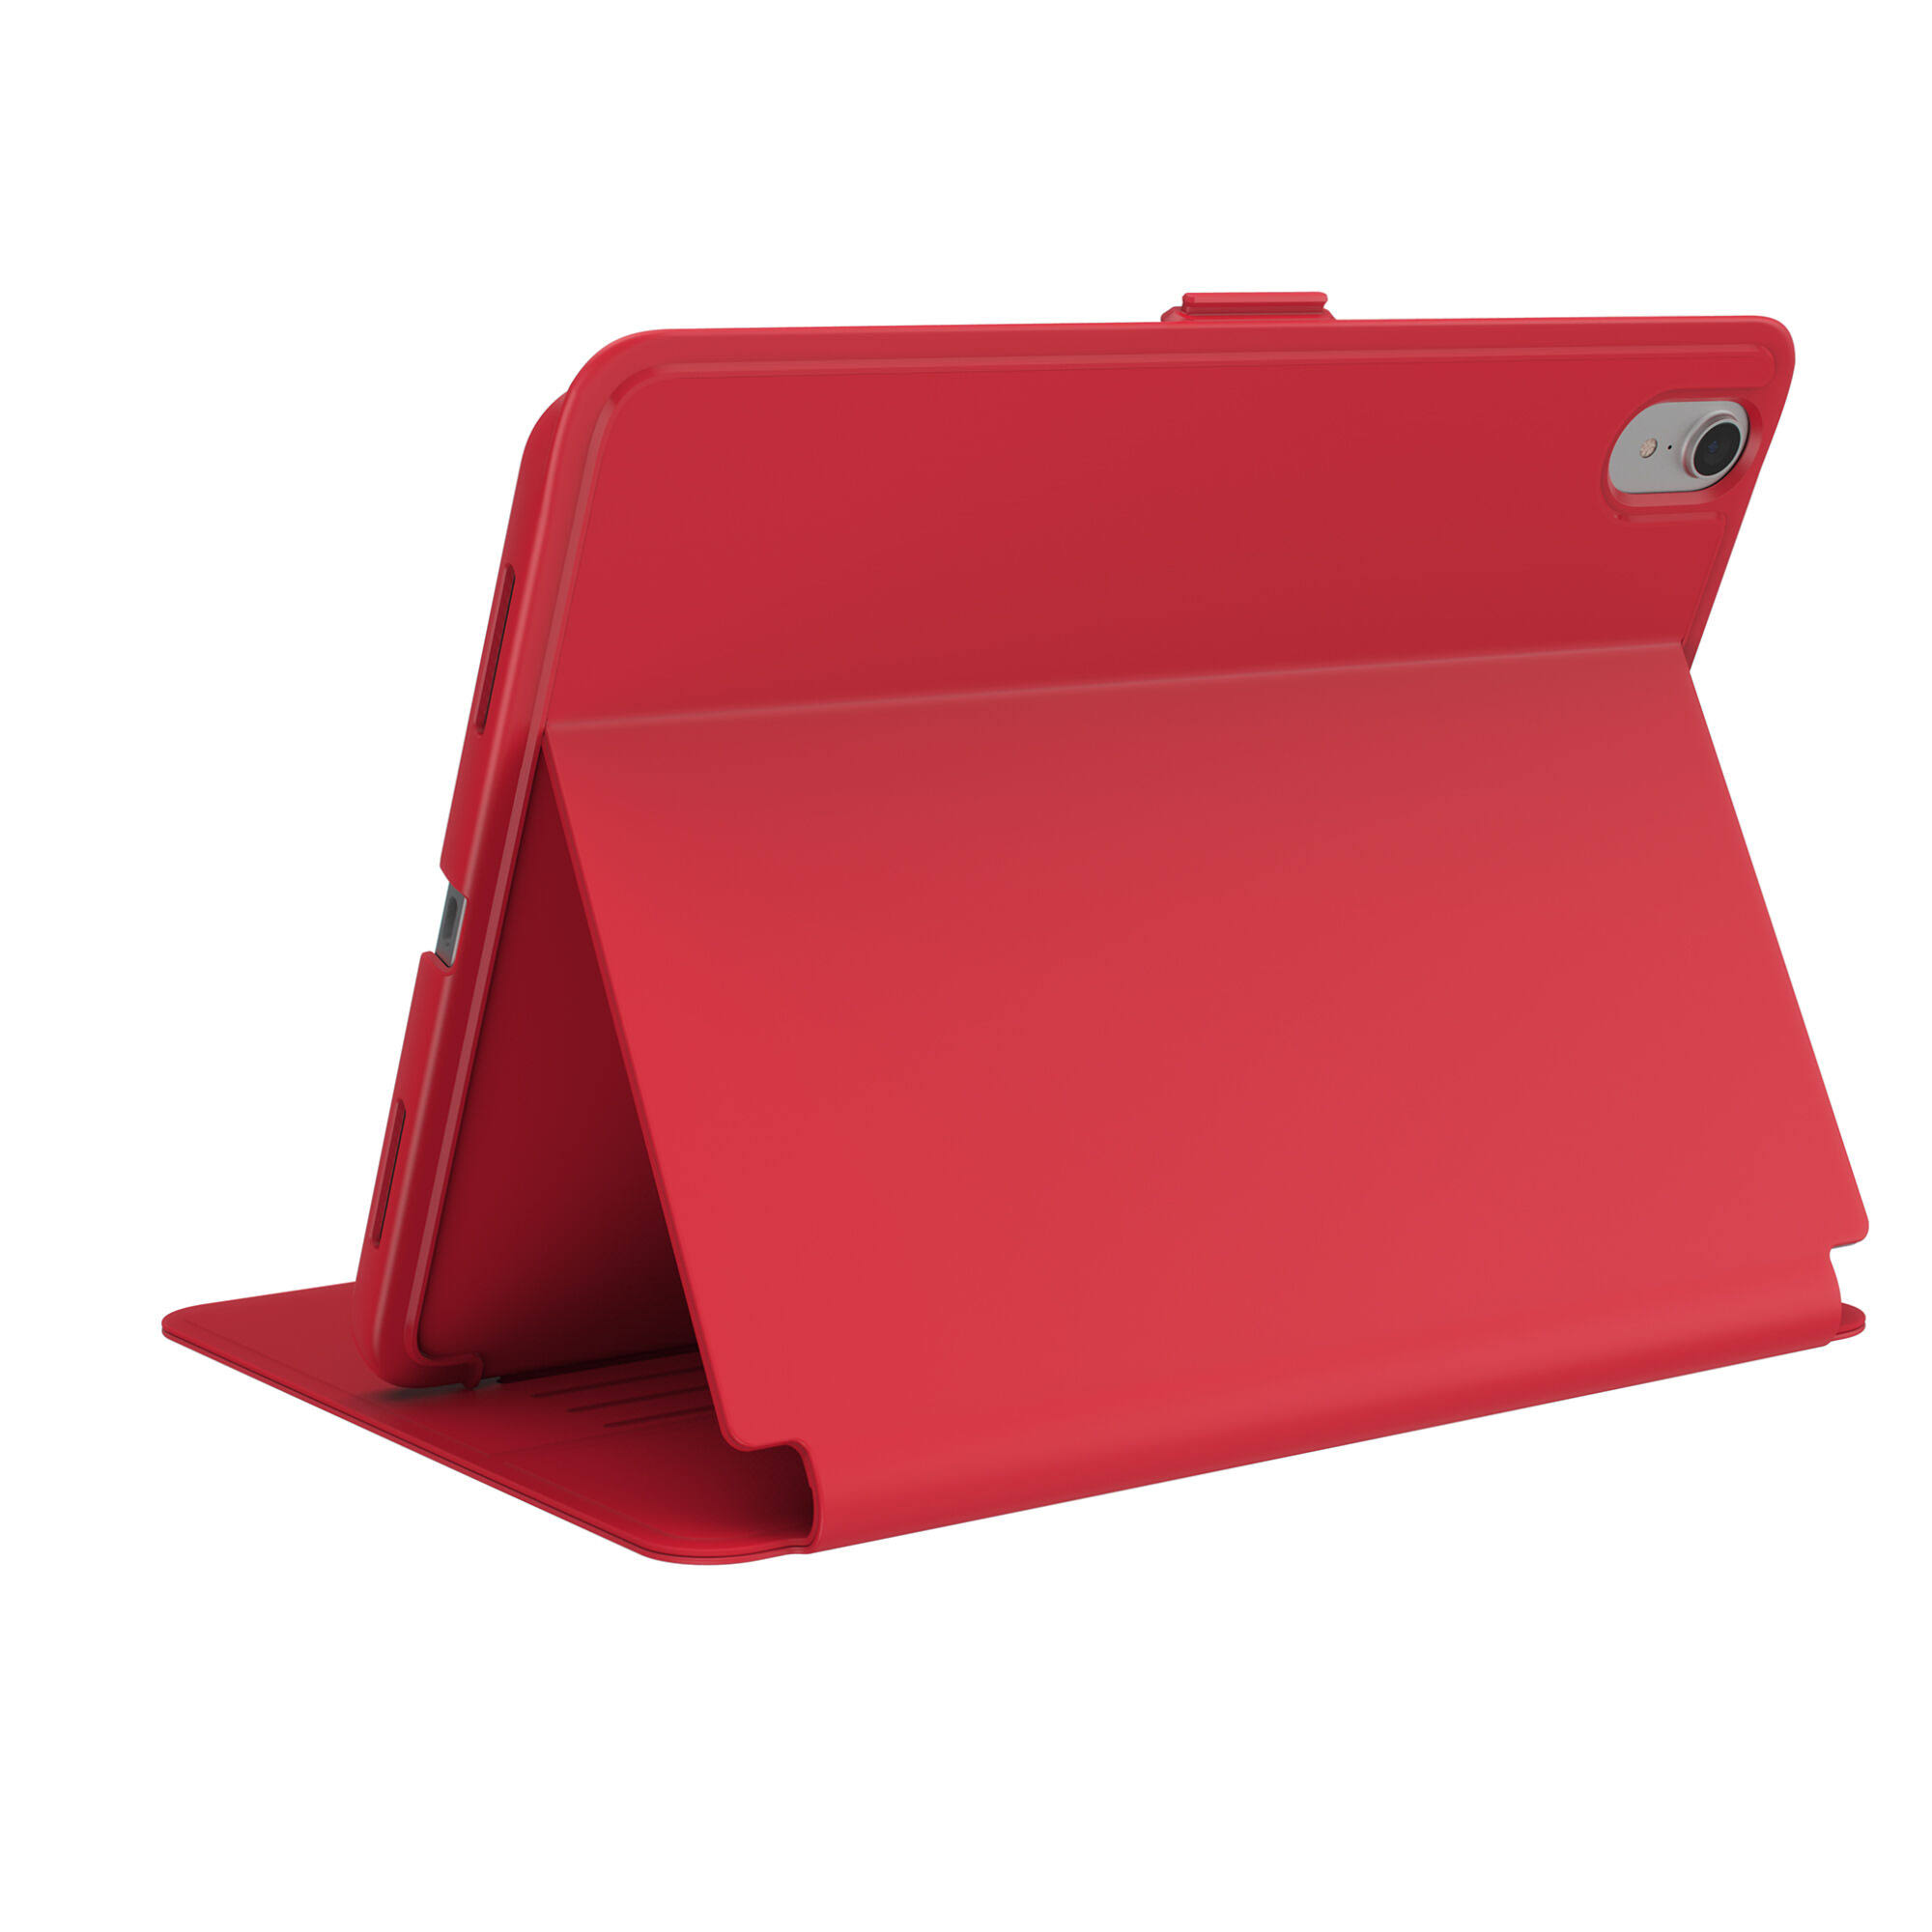 "Speck Balance Folio Flip Cover for Apple 11-inch iPad Pro - 11"" - Heartrate Red"